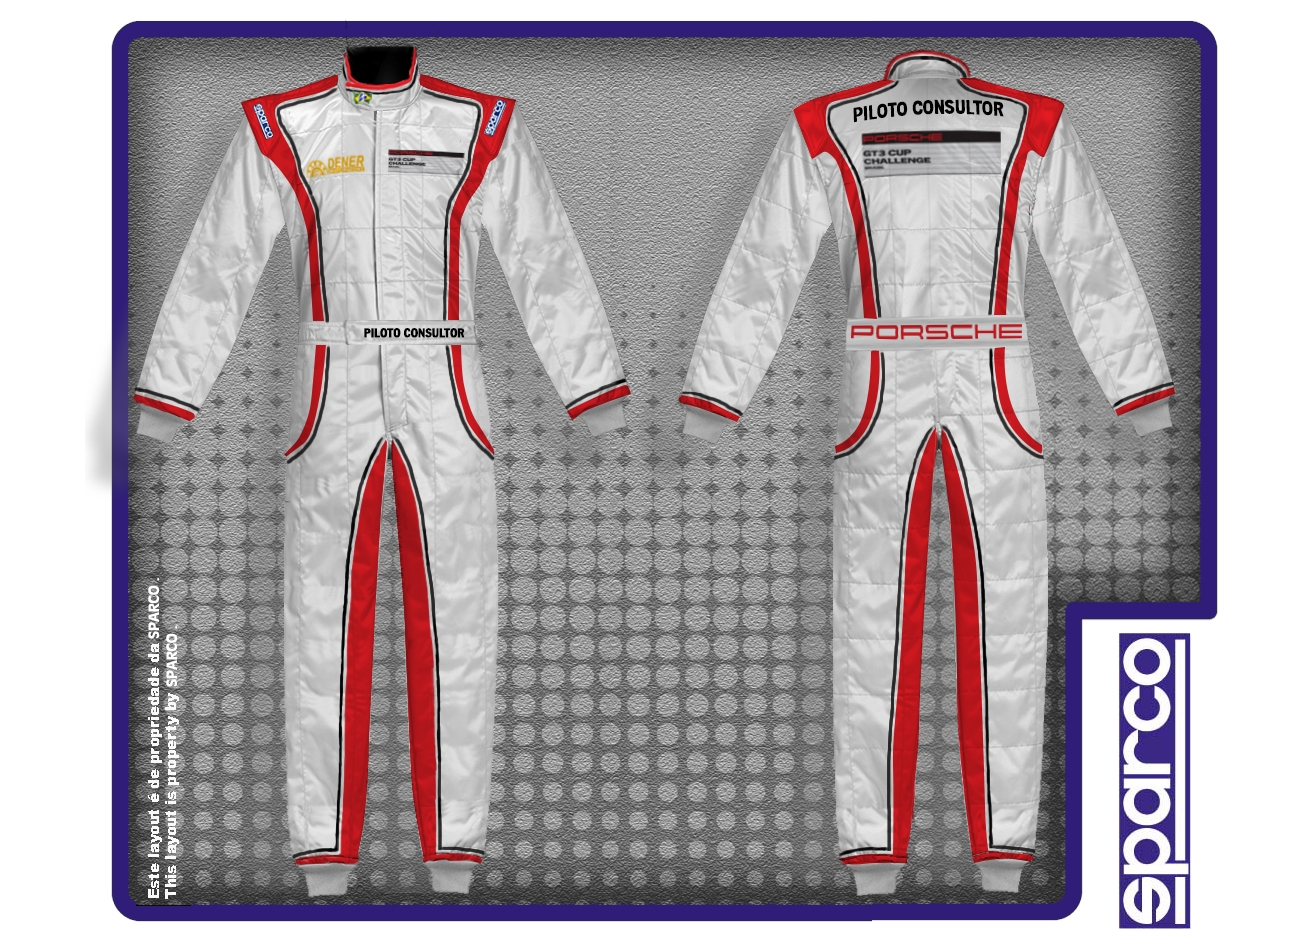 Layout of Sparco Racing Suits       for     Porsche Motorsport GT3 CUP CHALLENGE  BRAZIL   in Mogi- Guaçu / Brazil, 2013